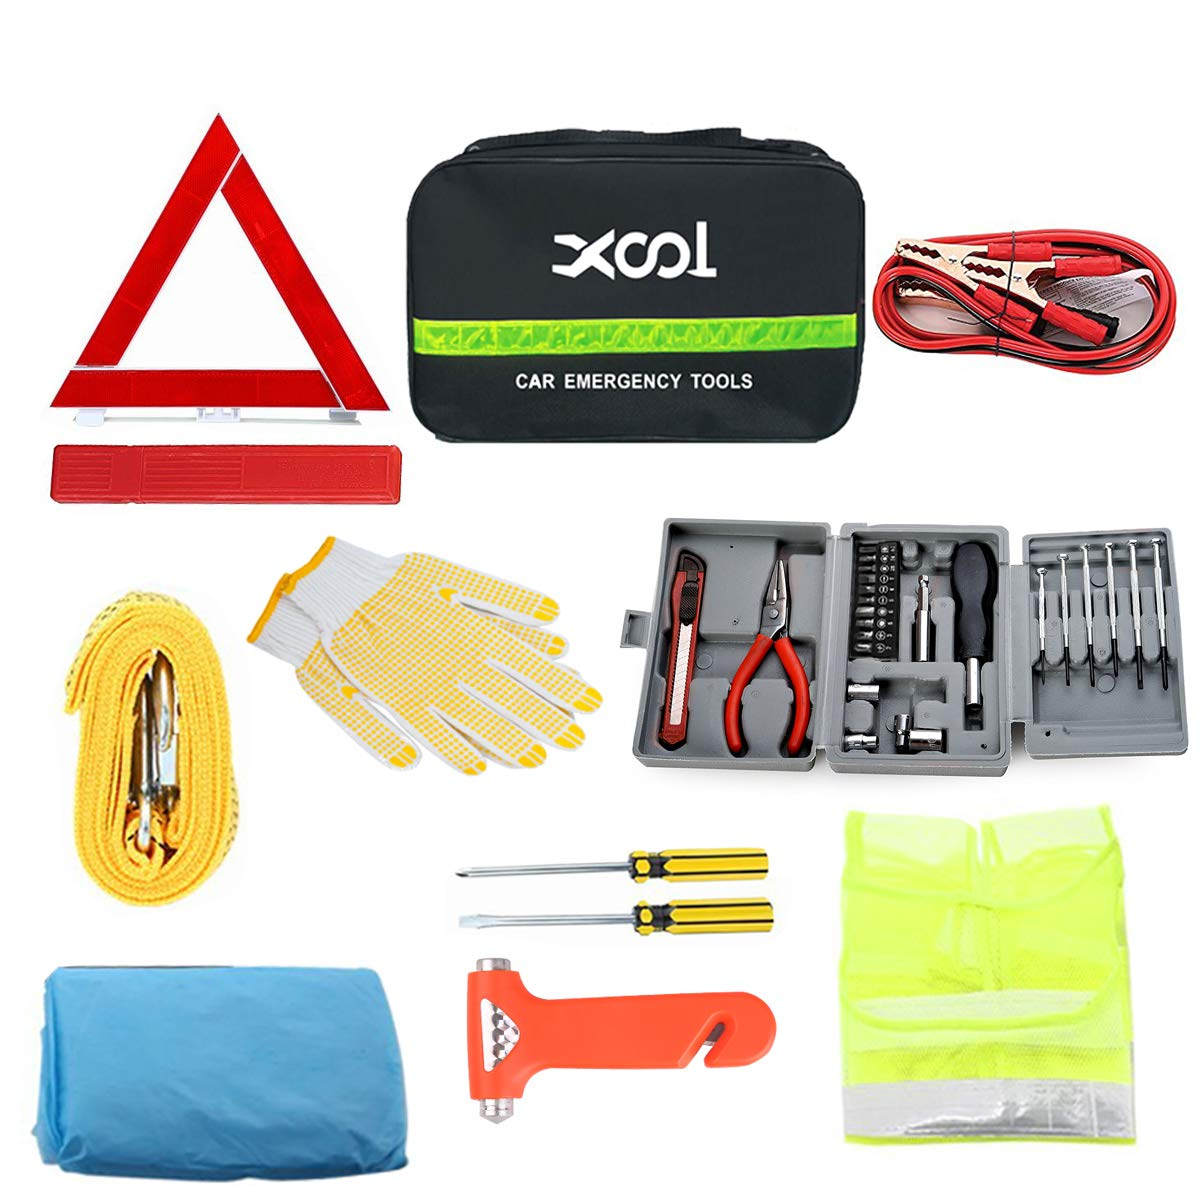 XOOL Car Emergency Kit Truck Or SUV Shenzhen Baishichuangyou Technology co.ltd. Safety Vest /& More Ideal Winter Accessory for Your Car Vehicle Roadside Car Emergency Kit with Screwdriver Kit Safety Triangle Tow Rope Tire Pressure Gauge